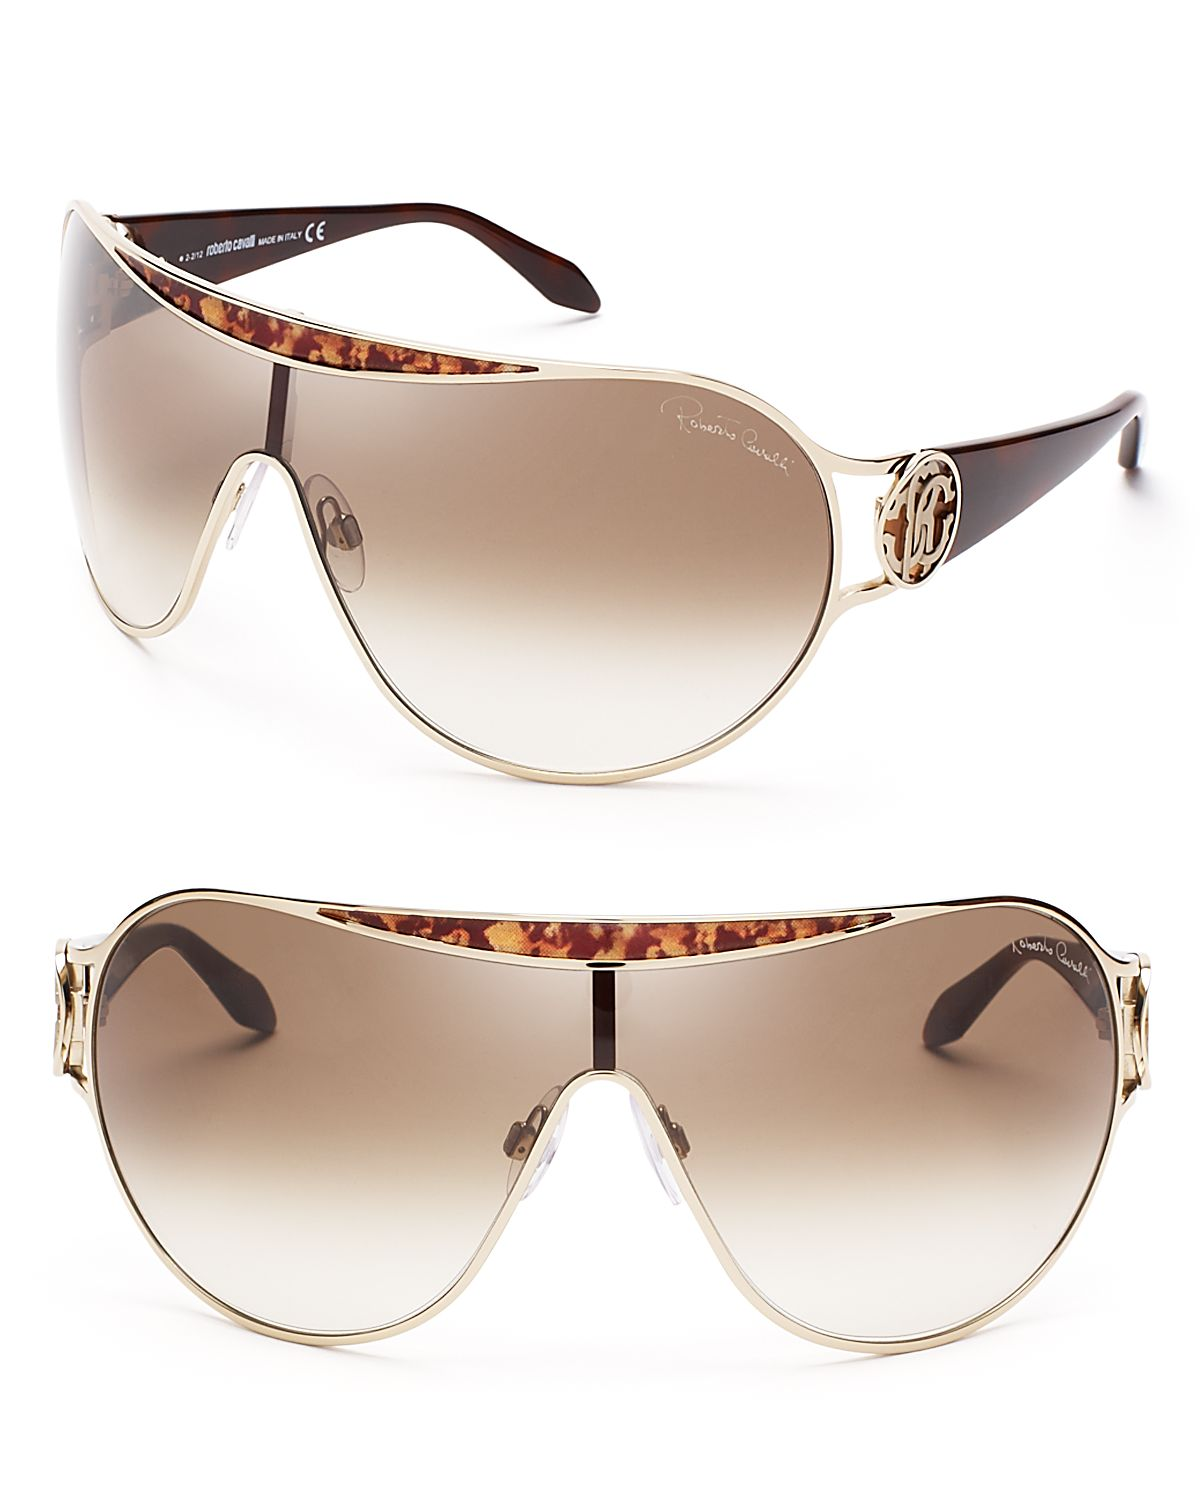 Roberto cavalli Shield Sunglasses in Metallic